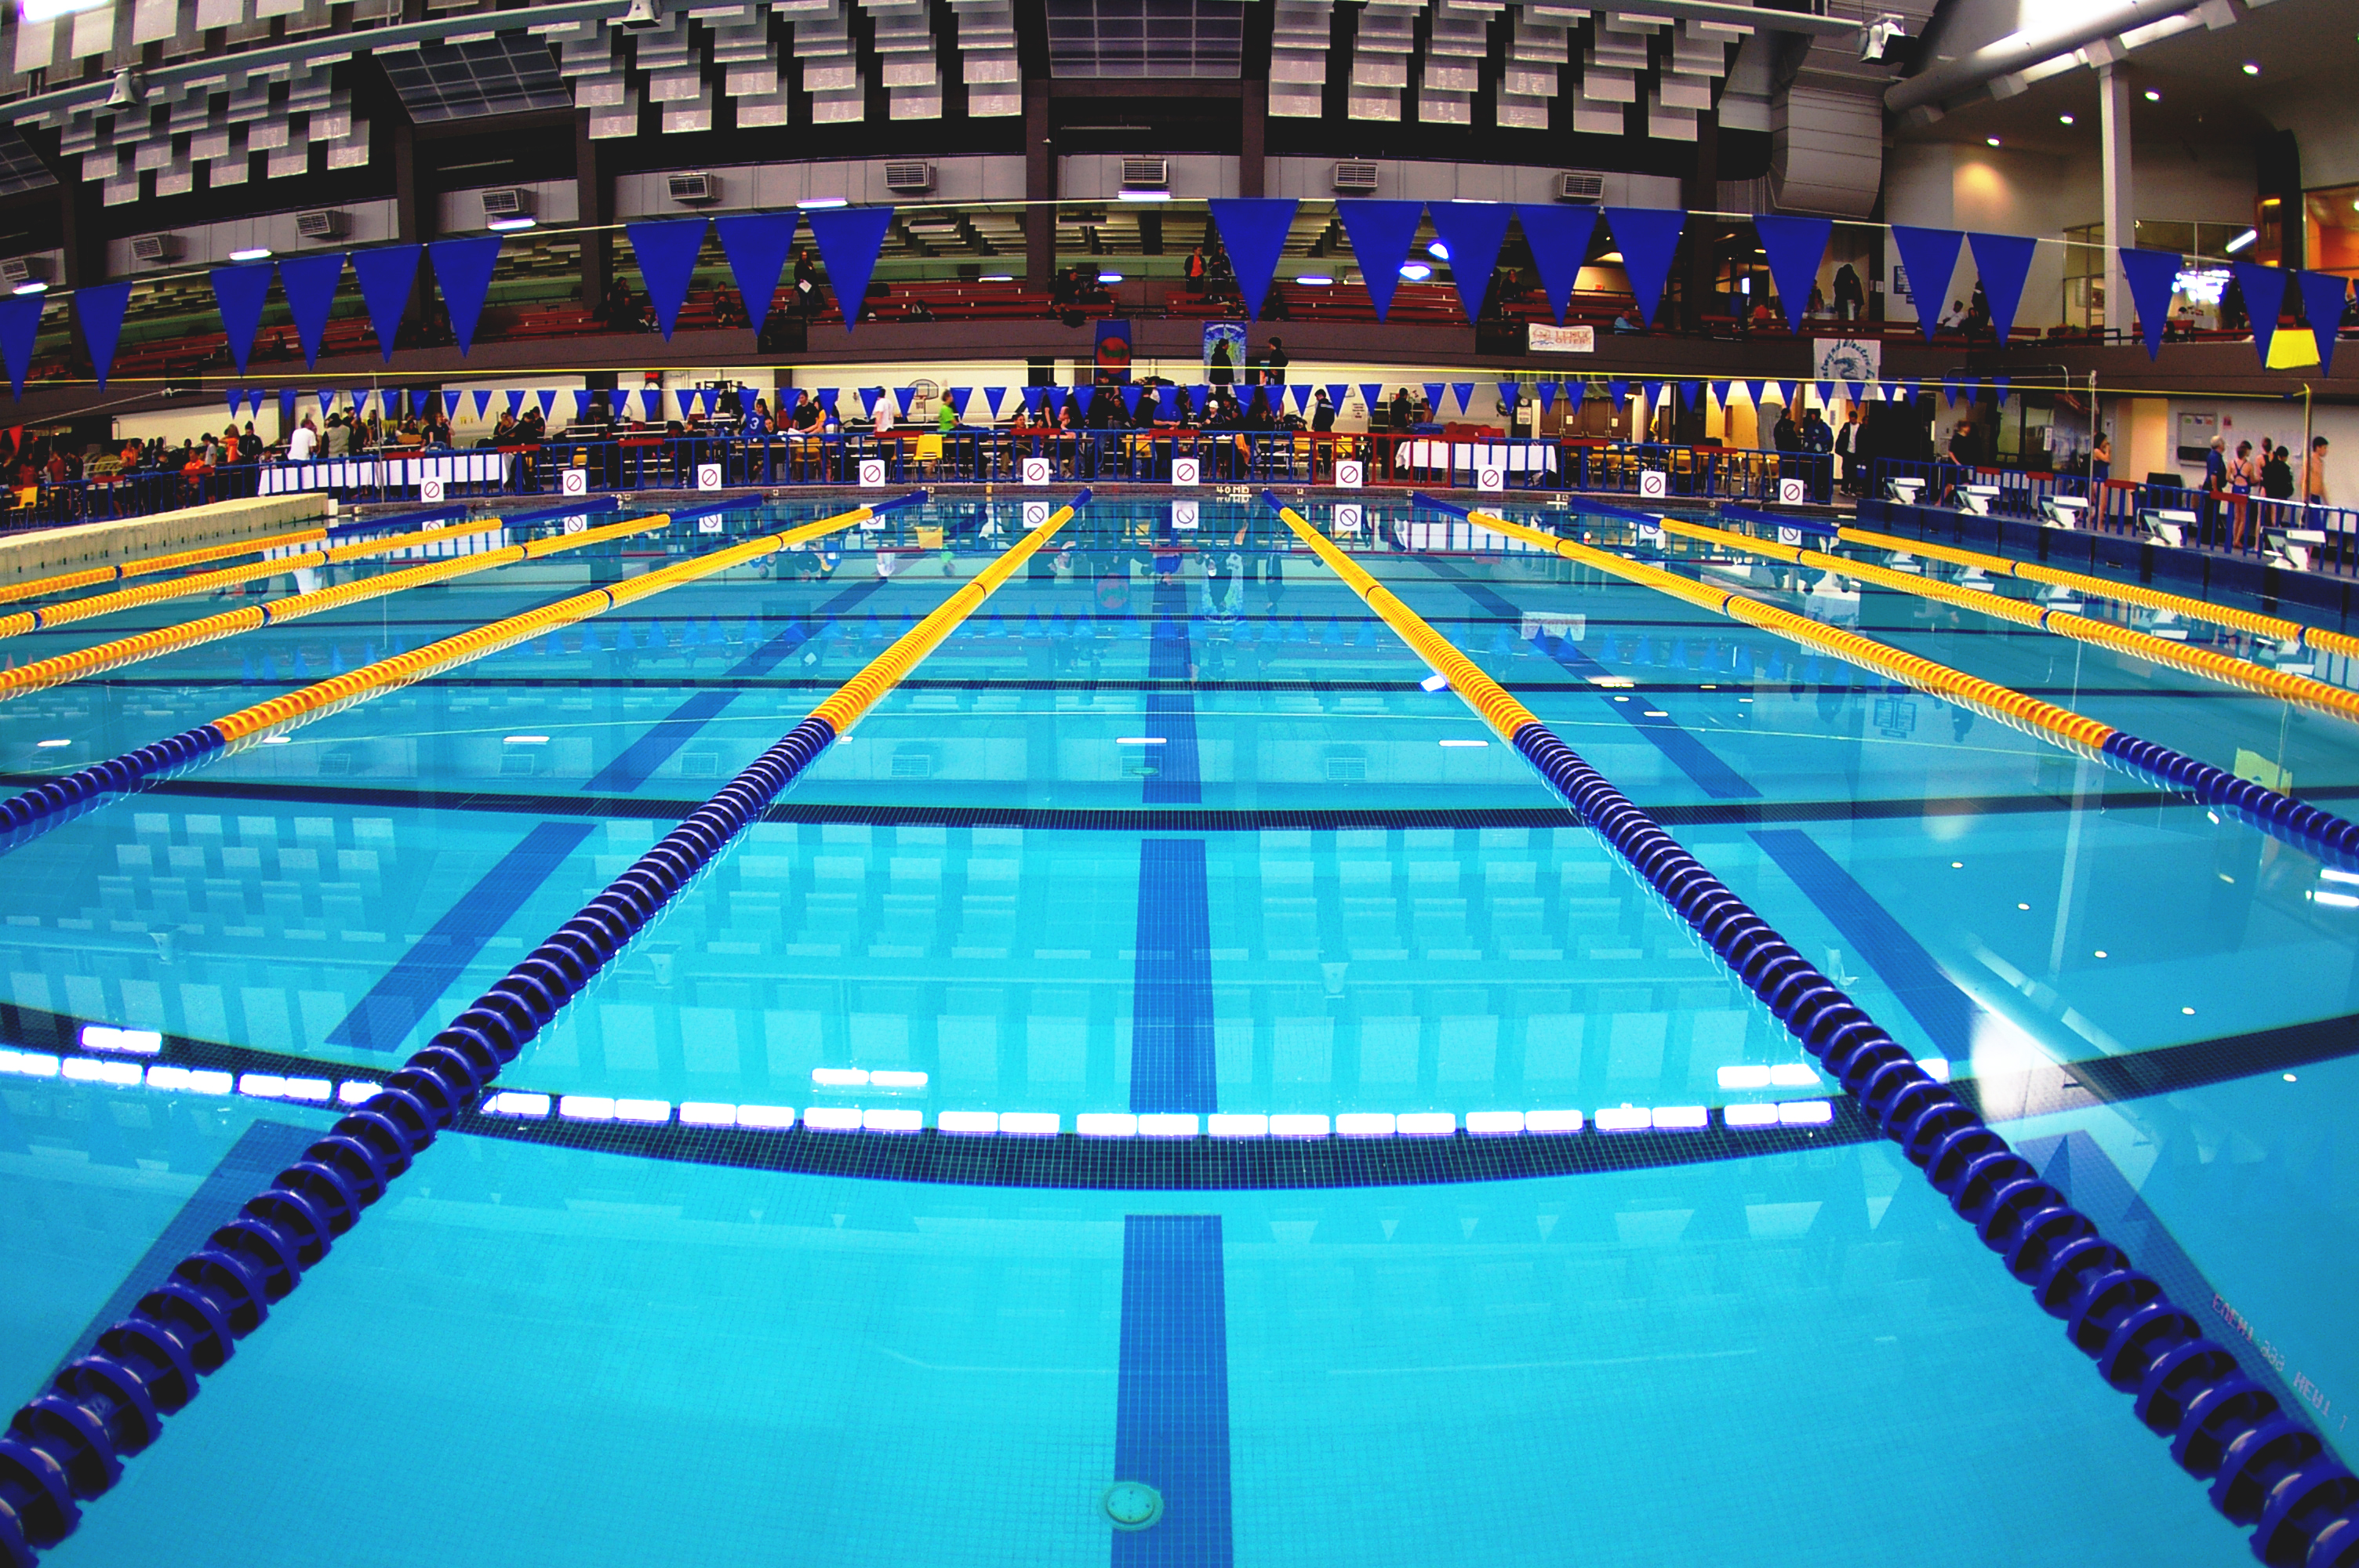 File:Swimming pool with lane ropes in place.jpg - Wikimedia ...